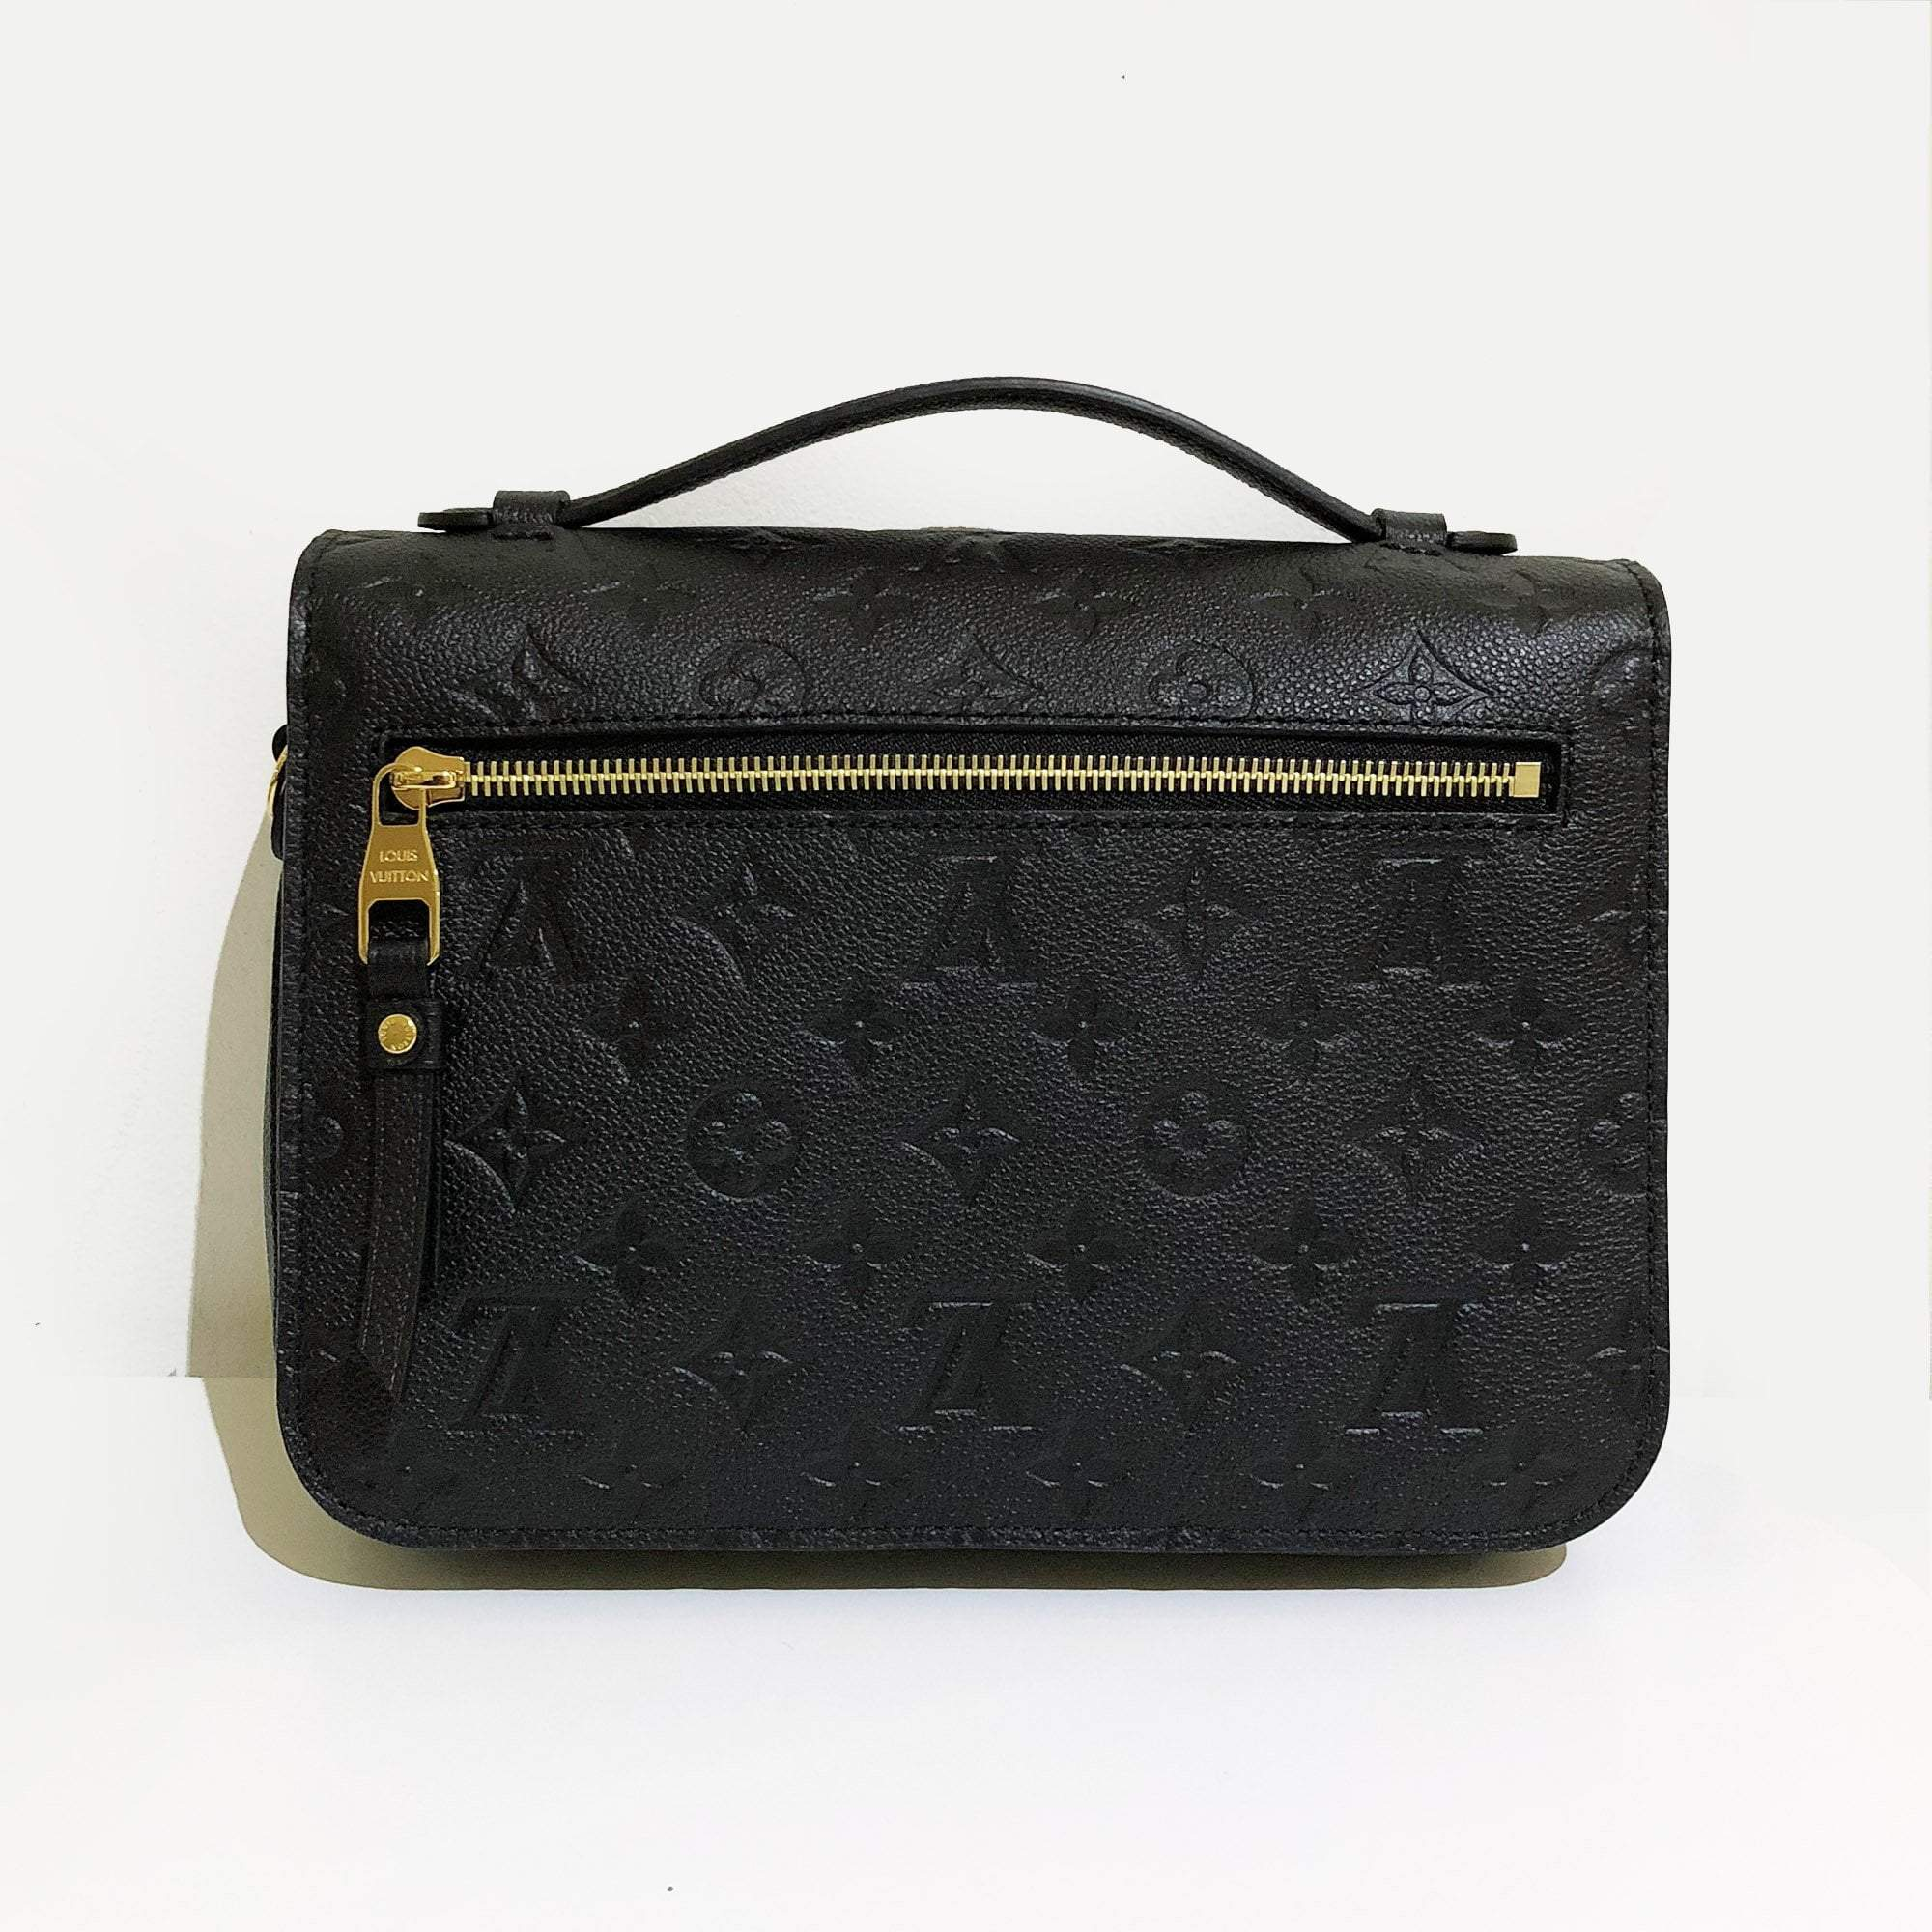 Louis Vuitton Pochette Metis Monogram Empreinte Leather Bag